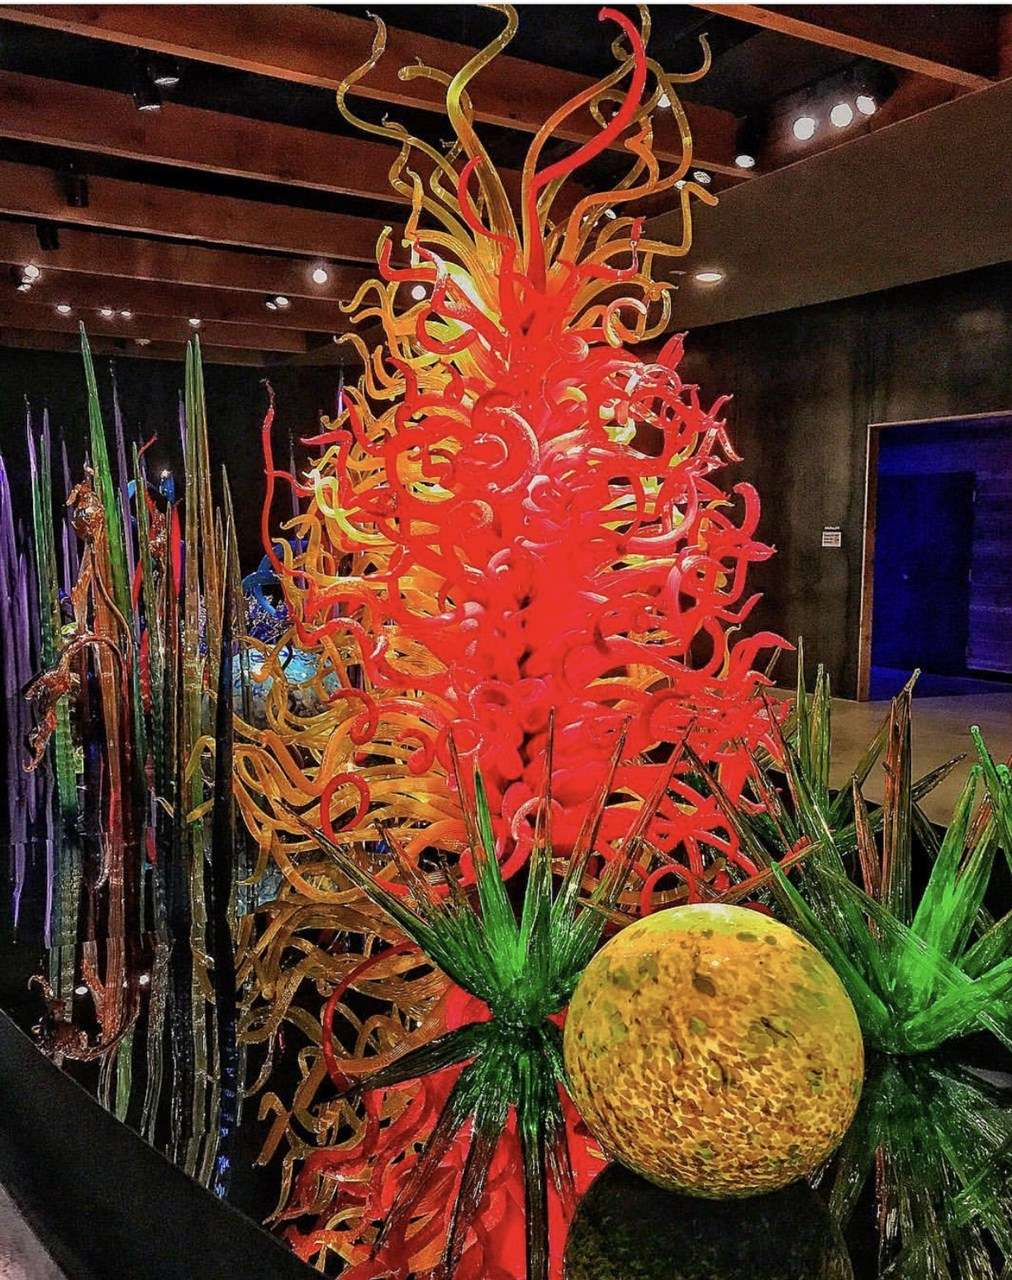 A Garden of Glass - The Chihuly Collection